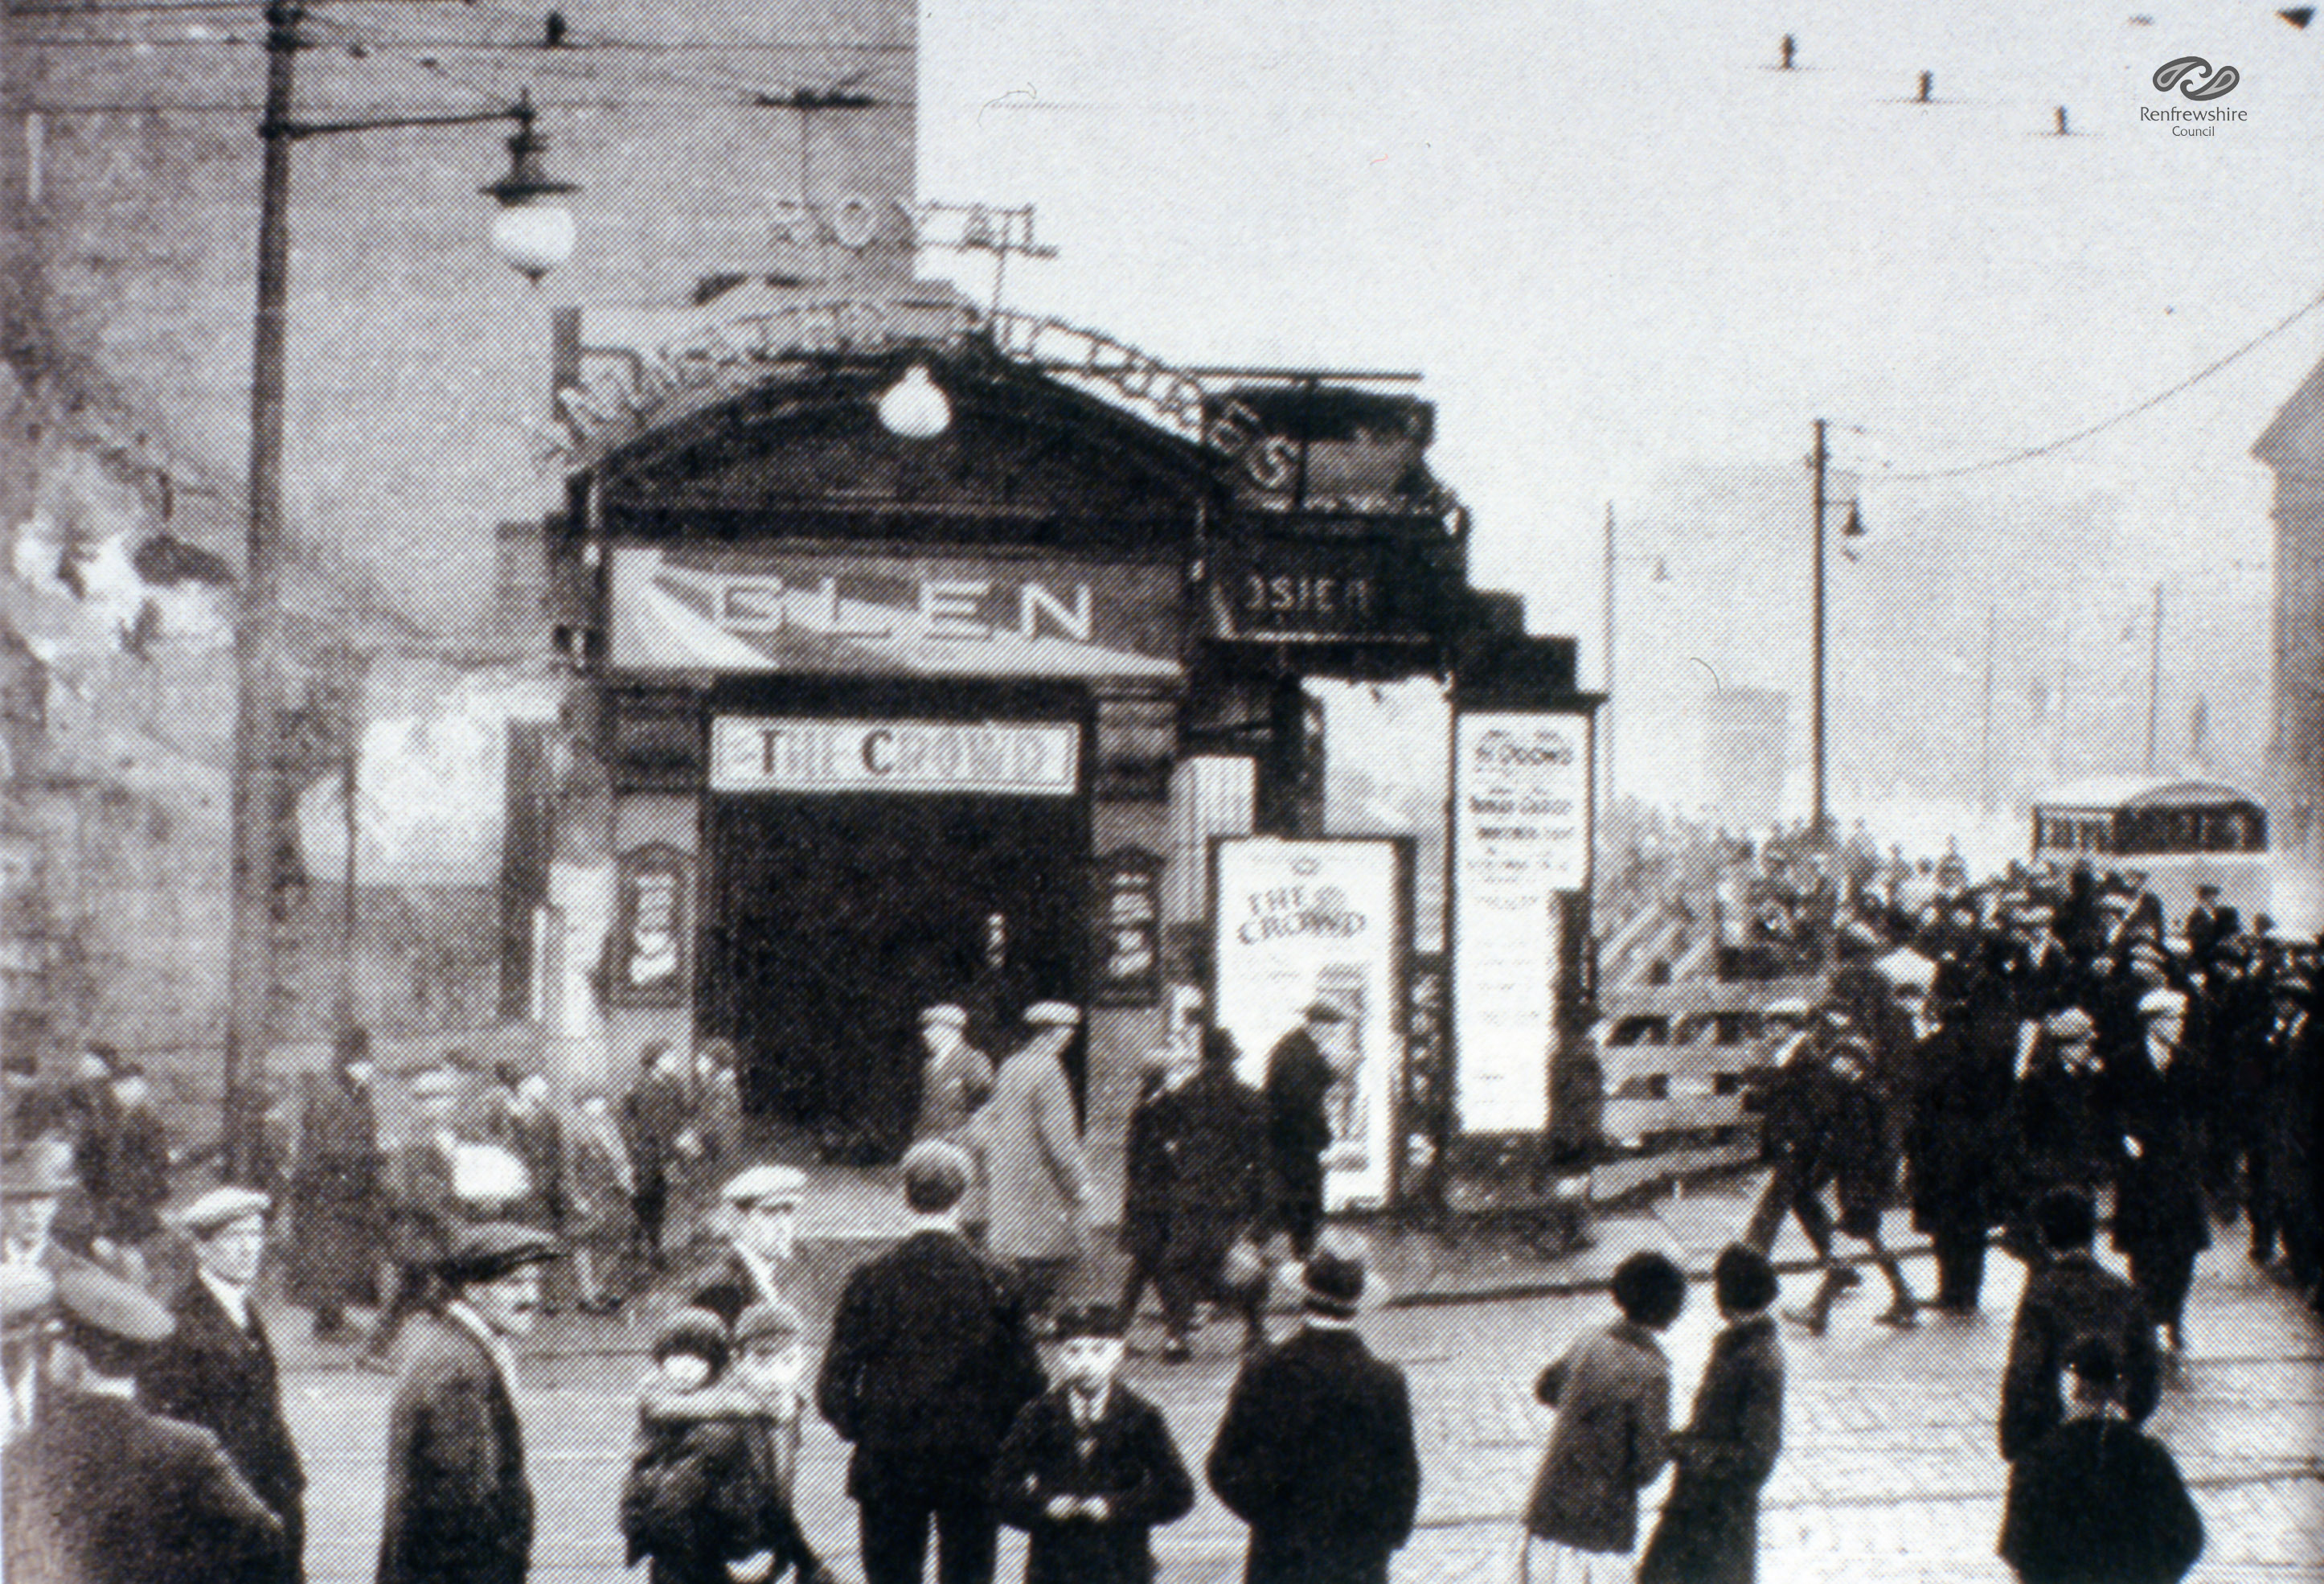 The Glen Cinema in Paisley, where 71 children died in December 31 1929 after a smoking film canister caused panic